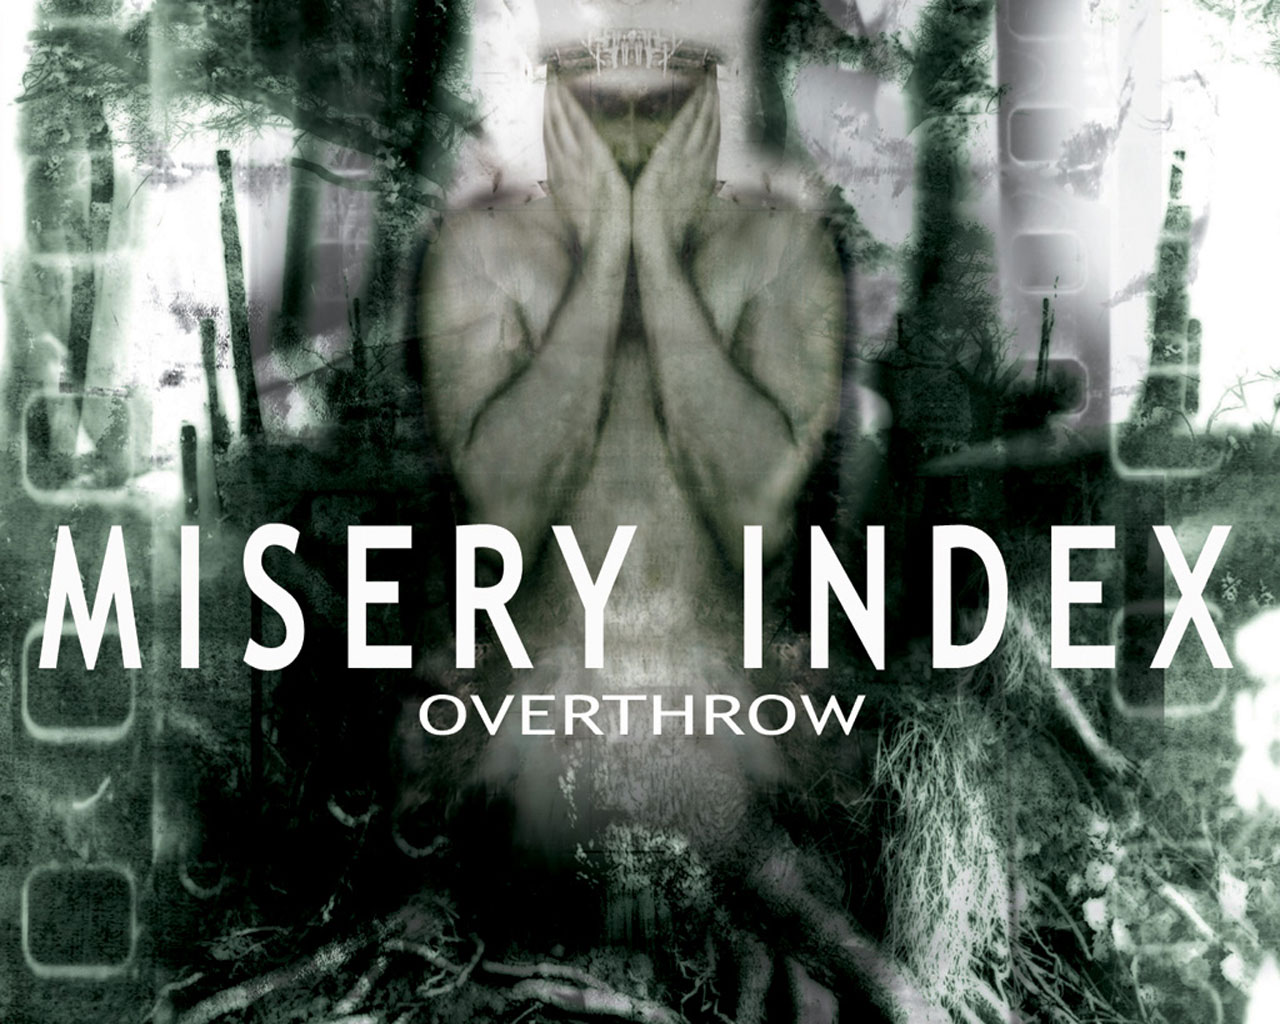 MISERY INDEX Live in Munich reviews and MP3